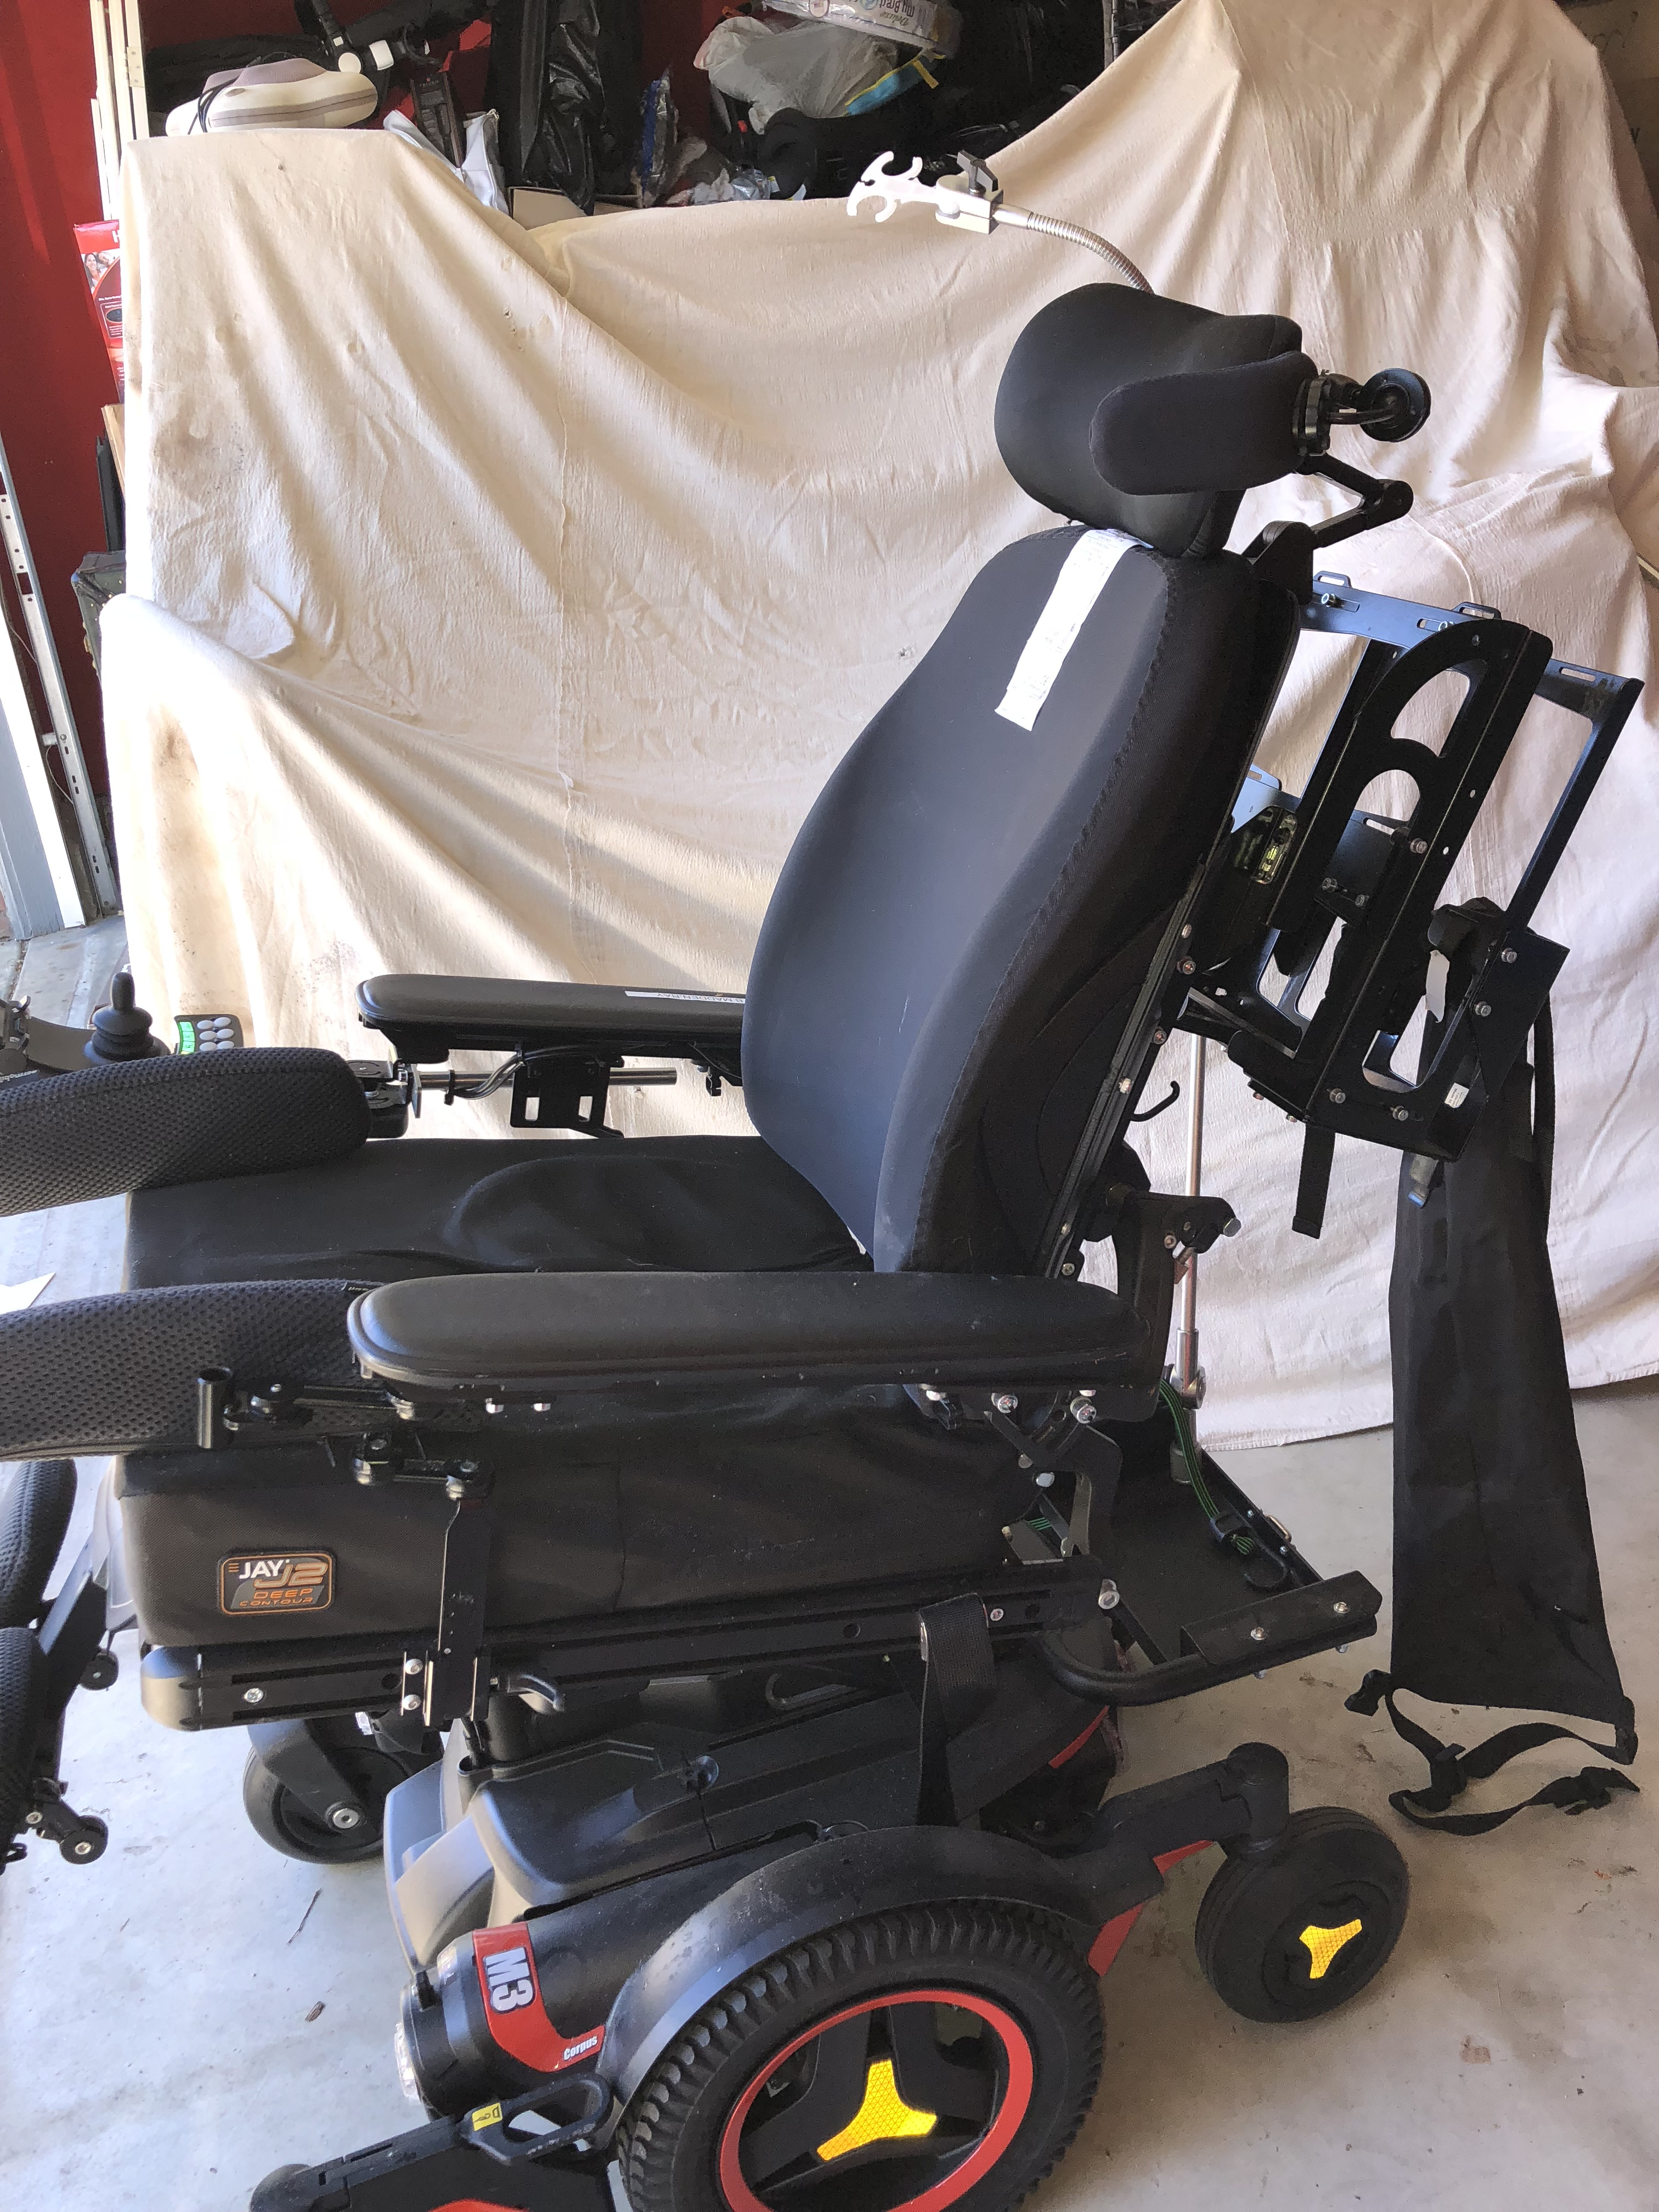 new arrivals 850dc bd89f M3 Corpus Power Wheelchair- Like new - Buy   Sell Used Electric  Wheelchairs, Mobility Scooters   More!